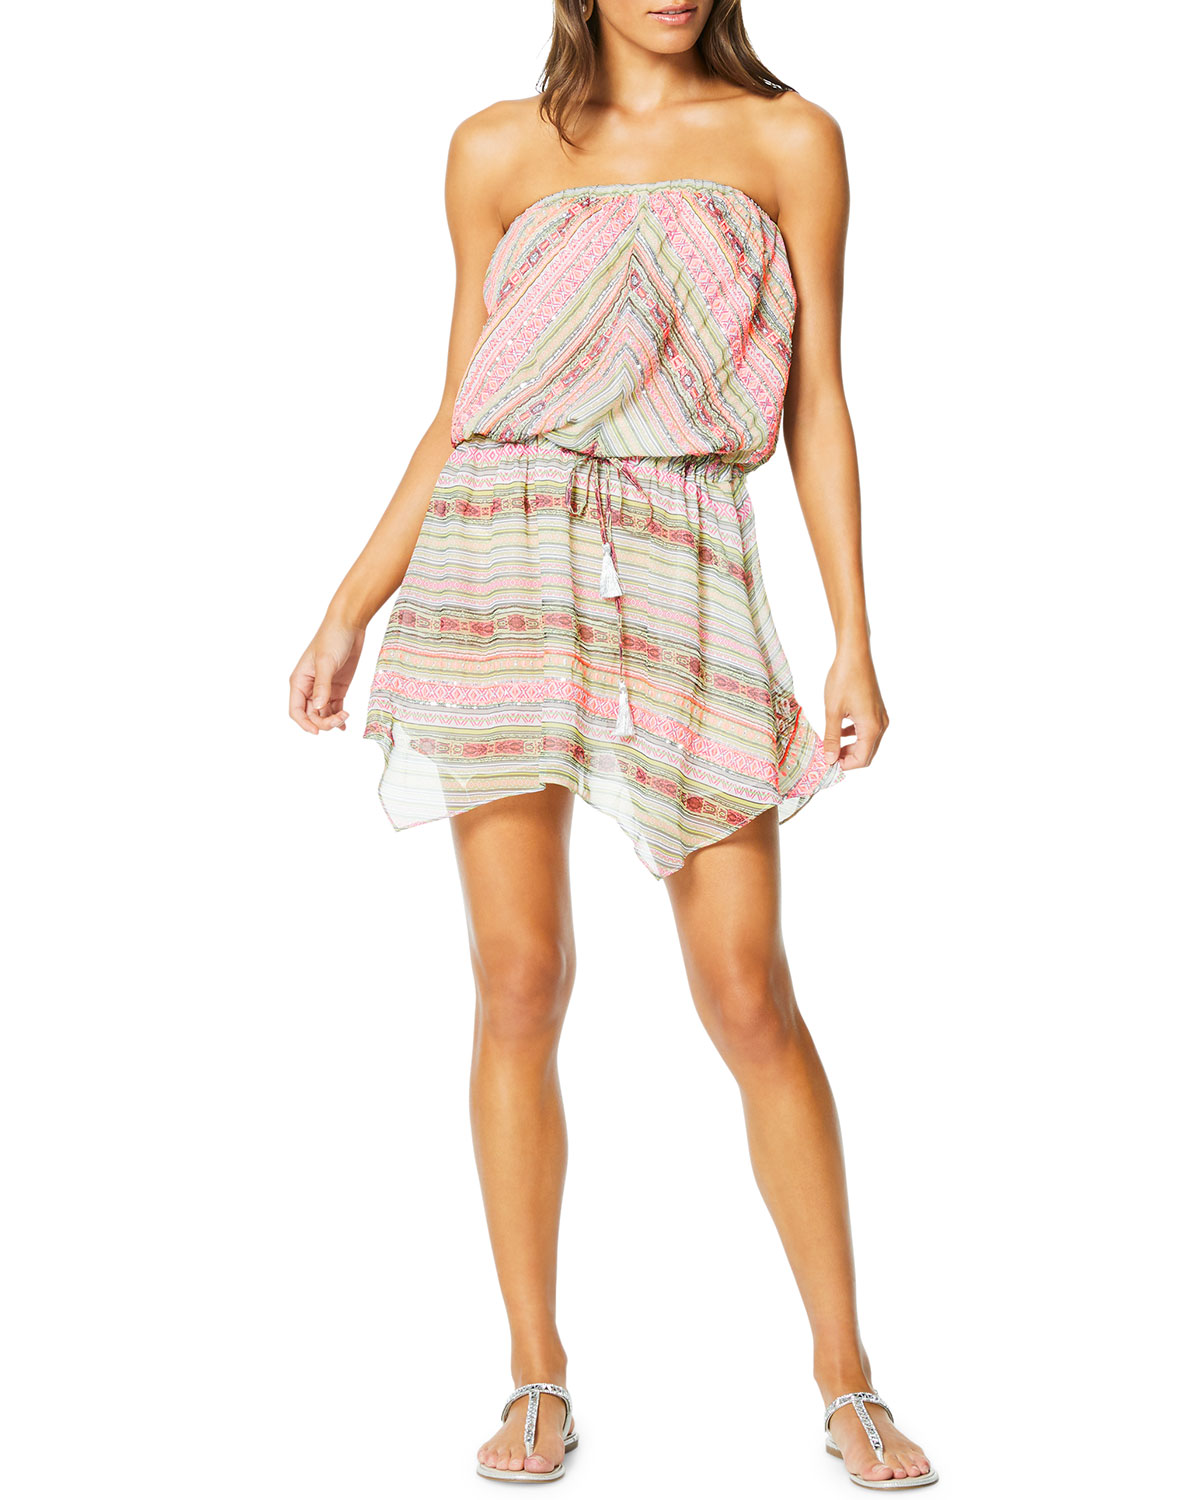 Ramy Brook Alondra Strapless Handkerchief Coverup Dress